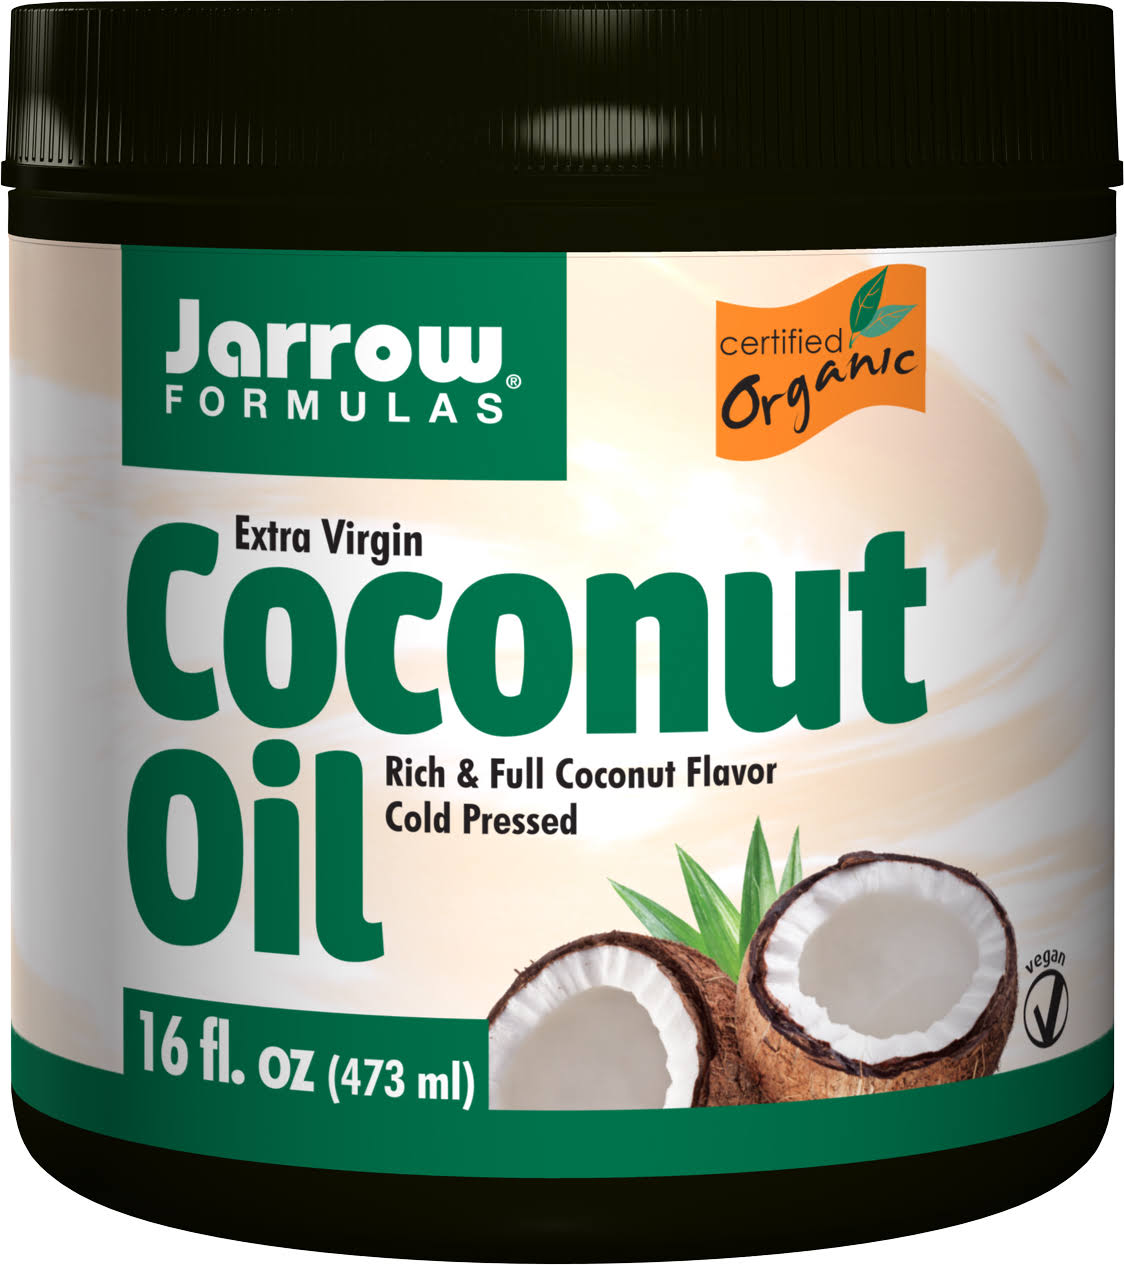 Jarrow Formulas Extra Virgin Coconut Oil - 473ml